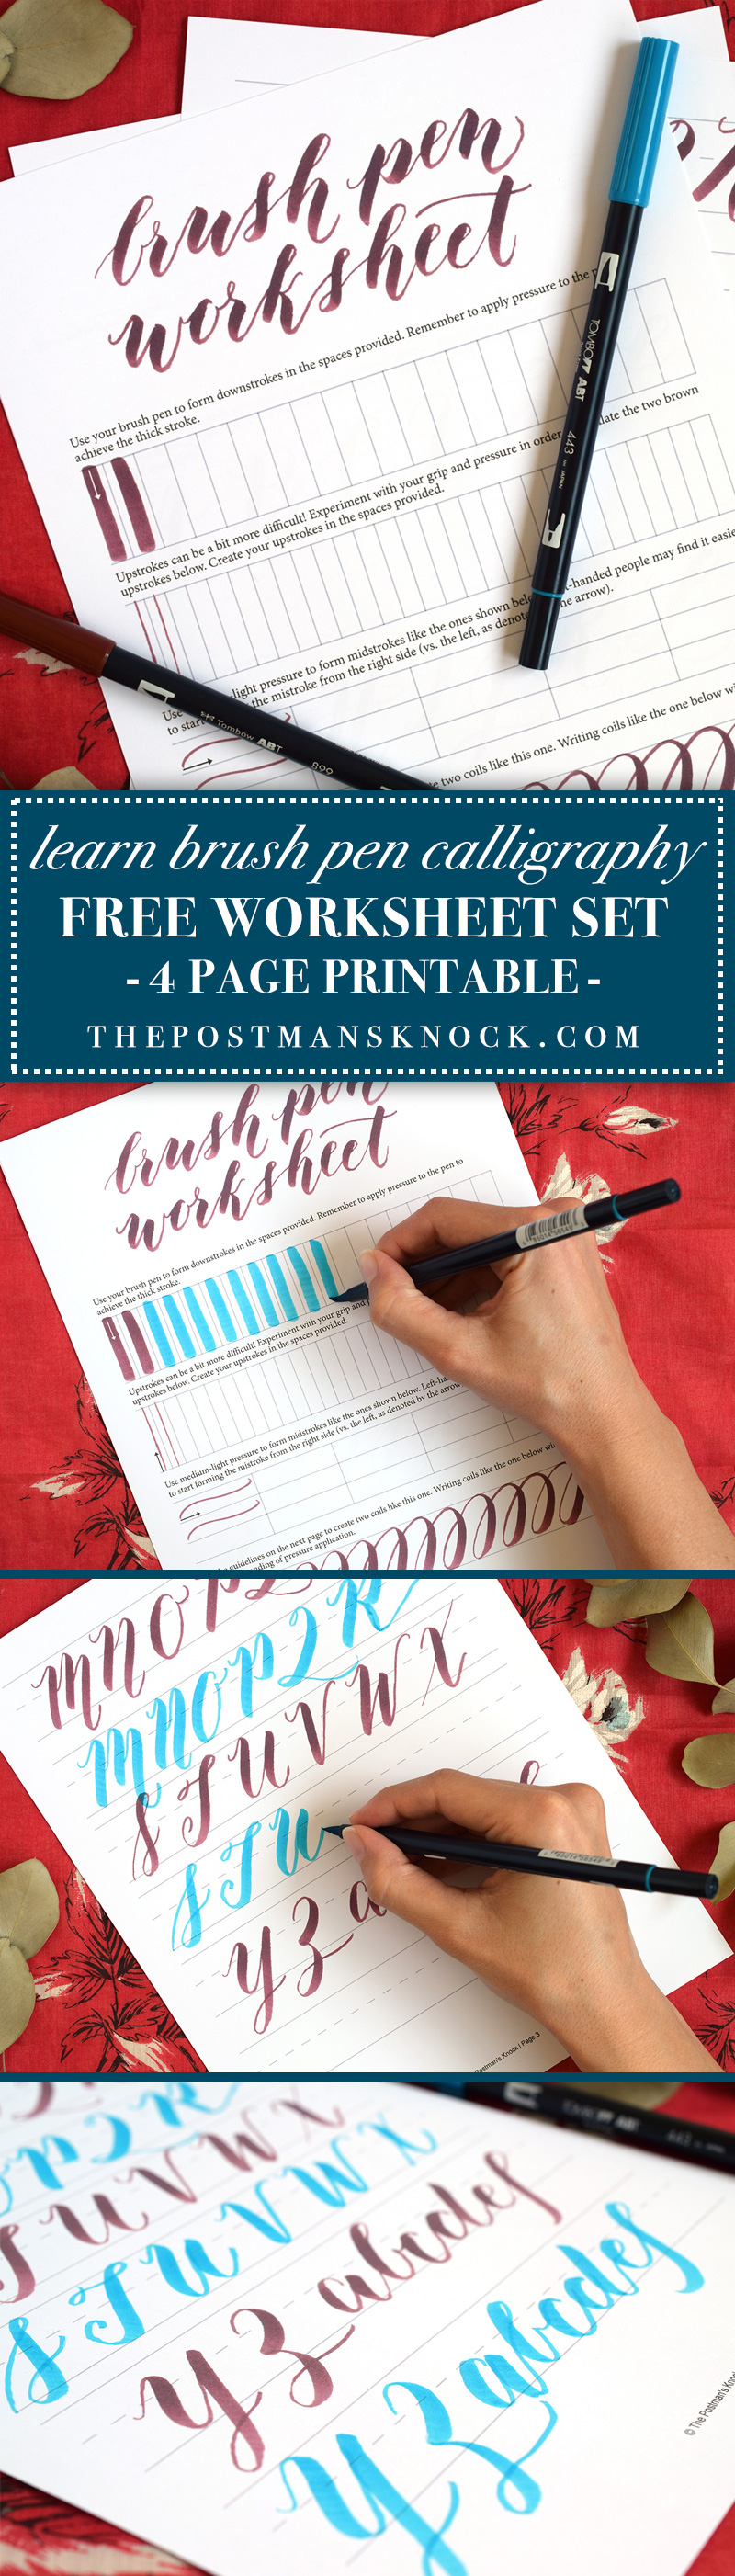 Coloring Worksheets For 1st Grade Free Brush Pen Calligraphy Worksheet  The Postmans Knock Common Core Vocabulary Worksheets with Triangles Worksheet Pdf Free Brush Pen Calligraphy Worksheet Continents Worksheets For Kids Pdf